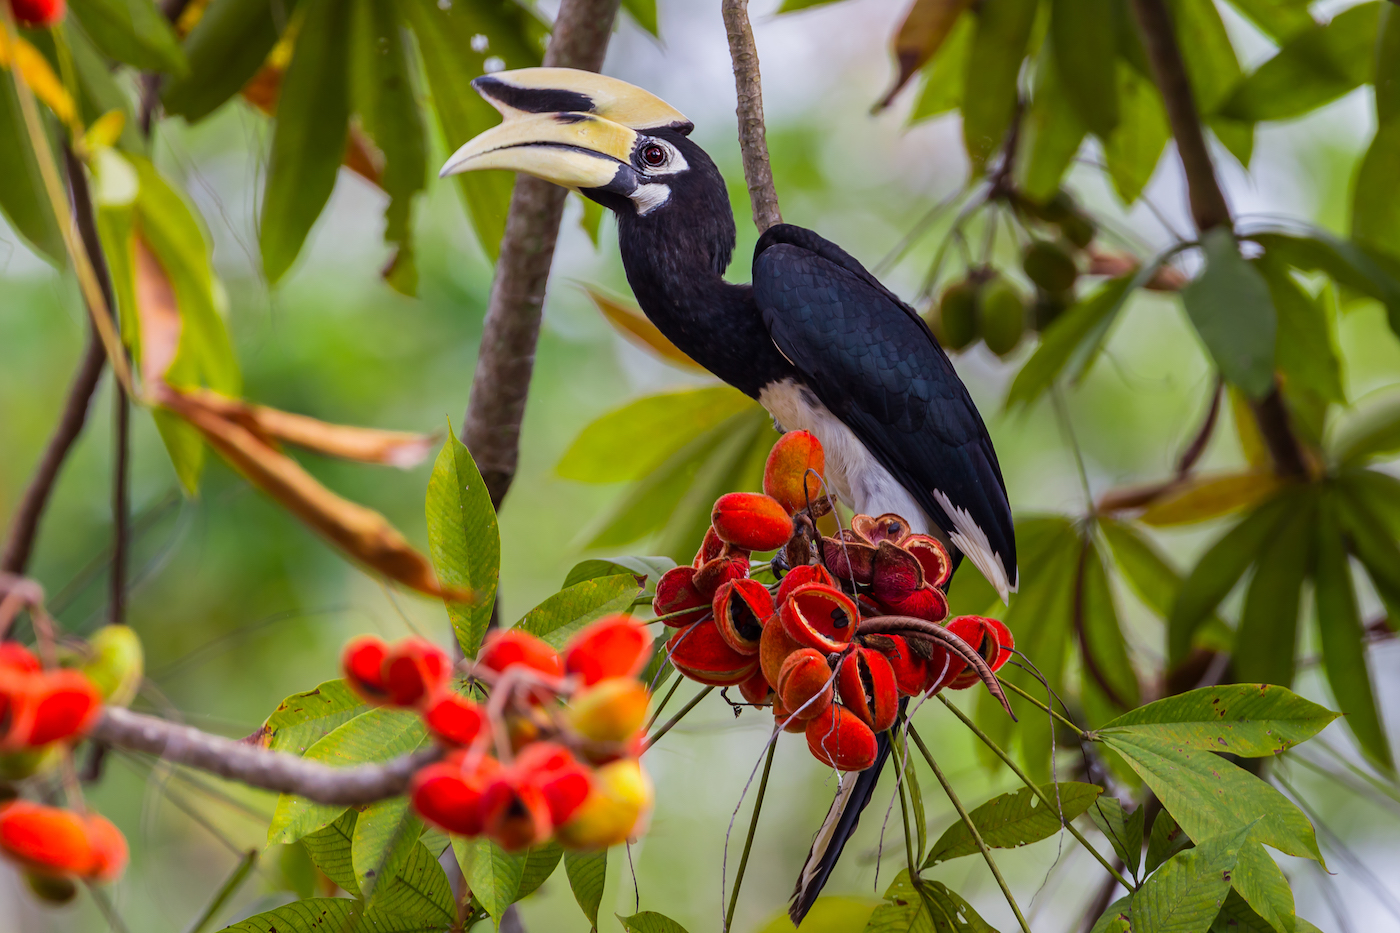 Mulu Park is home to eight hornbill species